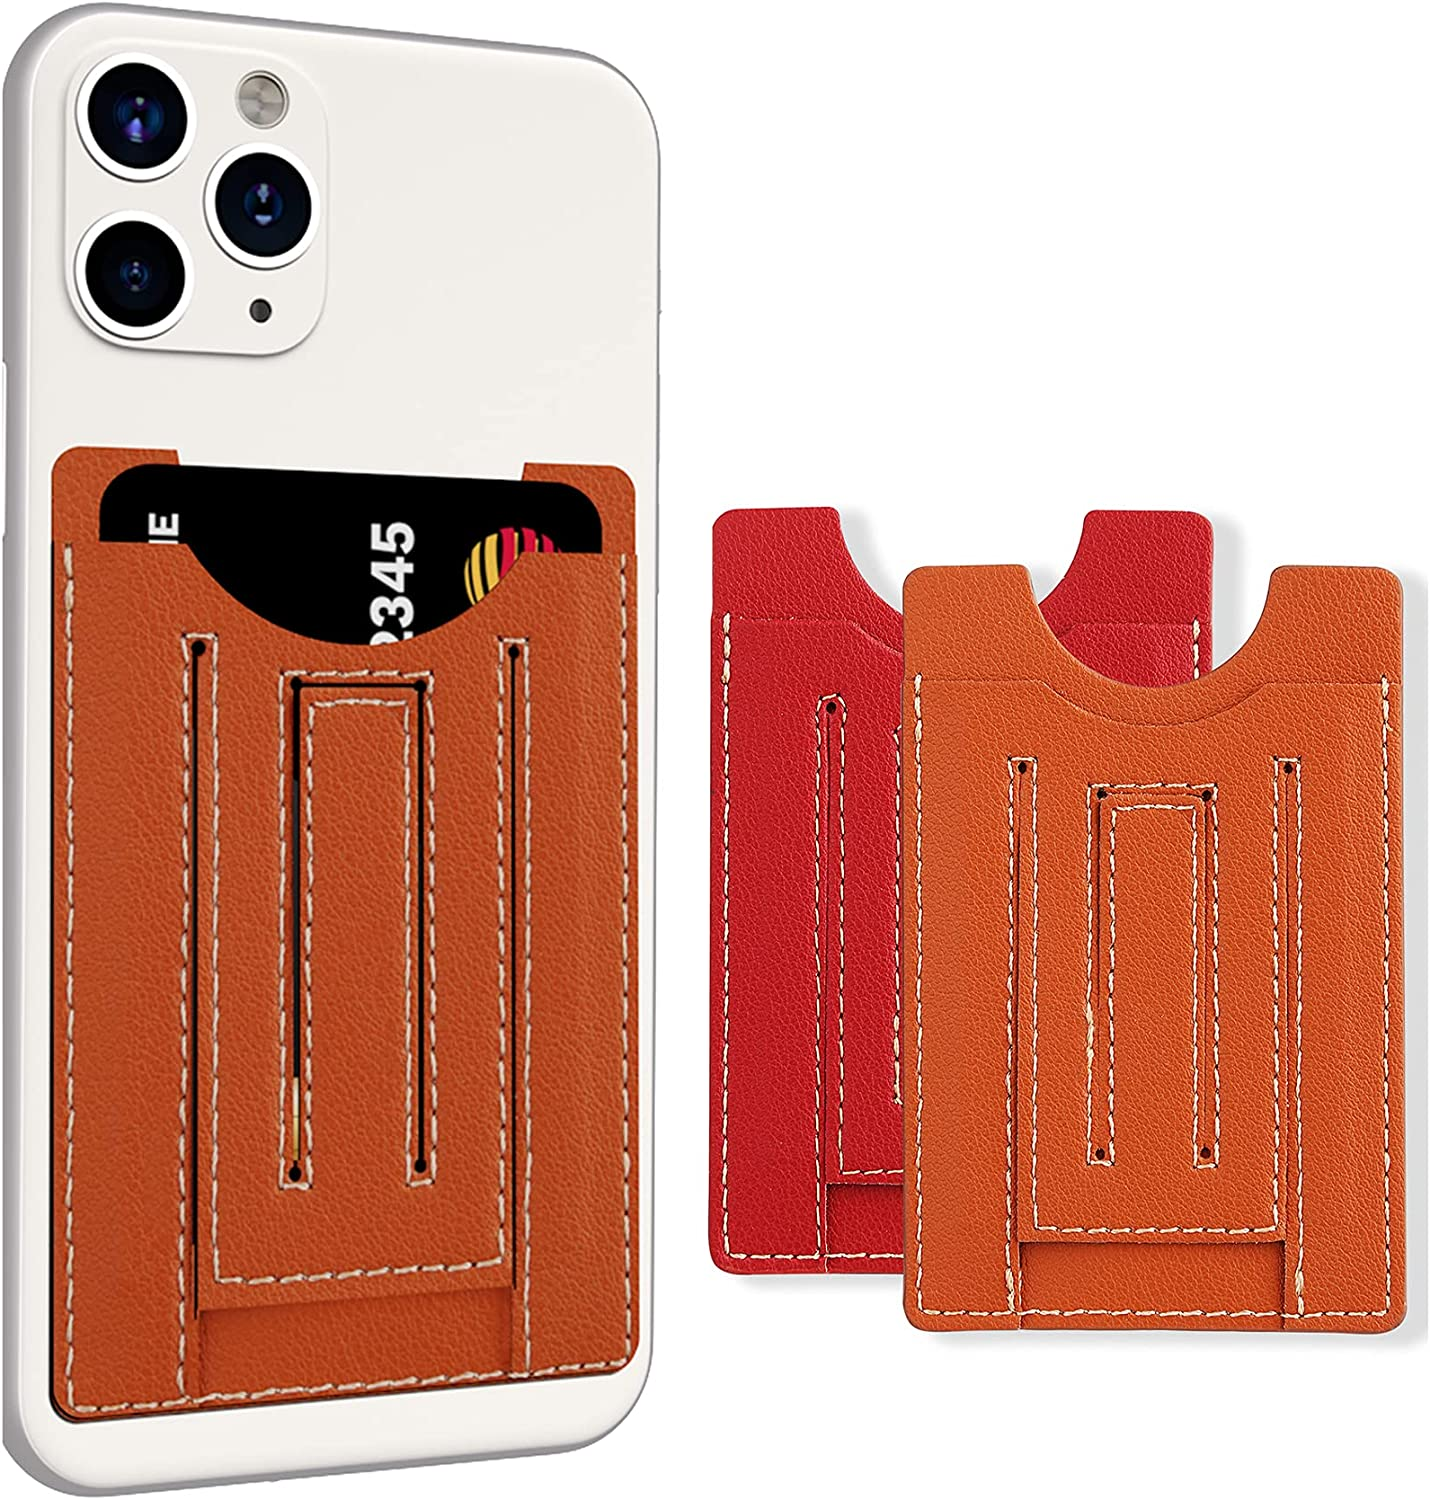 U-echo Stick-on Credit Card Holder with Phone Stand for Back of Cell Phone, Leather Adhesive Credit Card Wallet, Compatible with Most Cell Phones [2 Pack, Orange+Red]